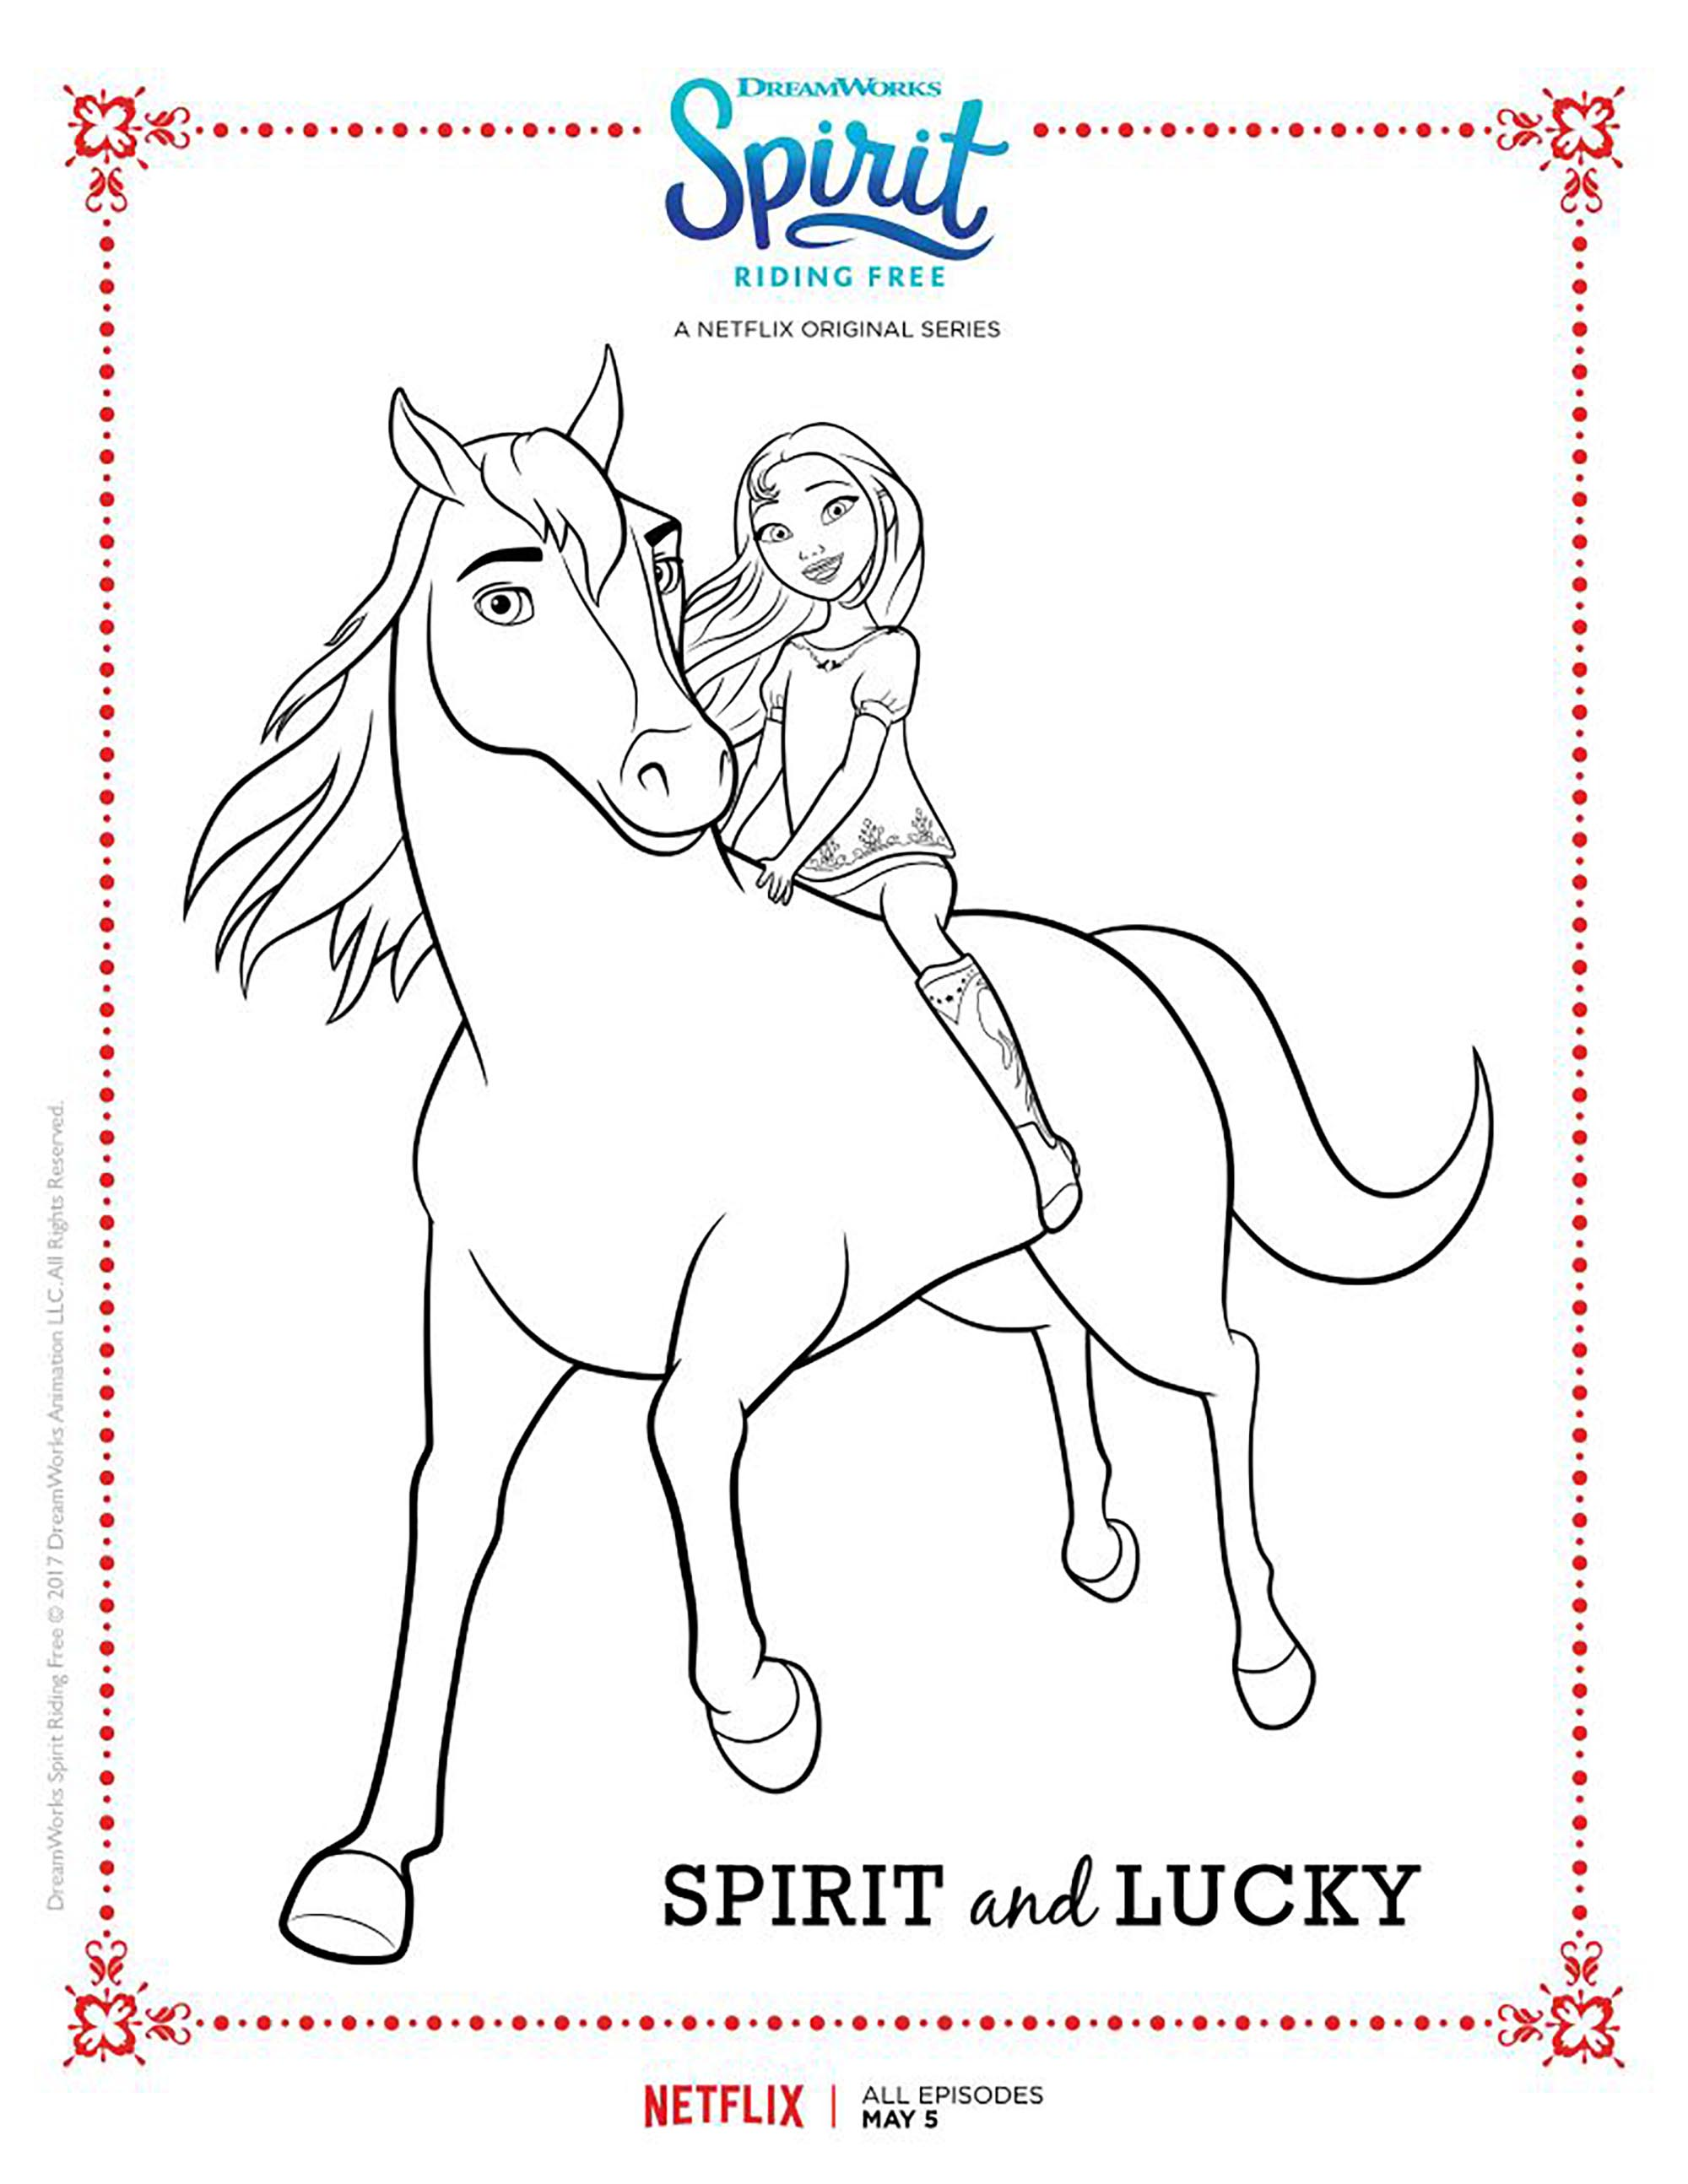 Funny Spirit coloring page for children